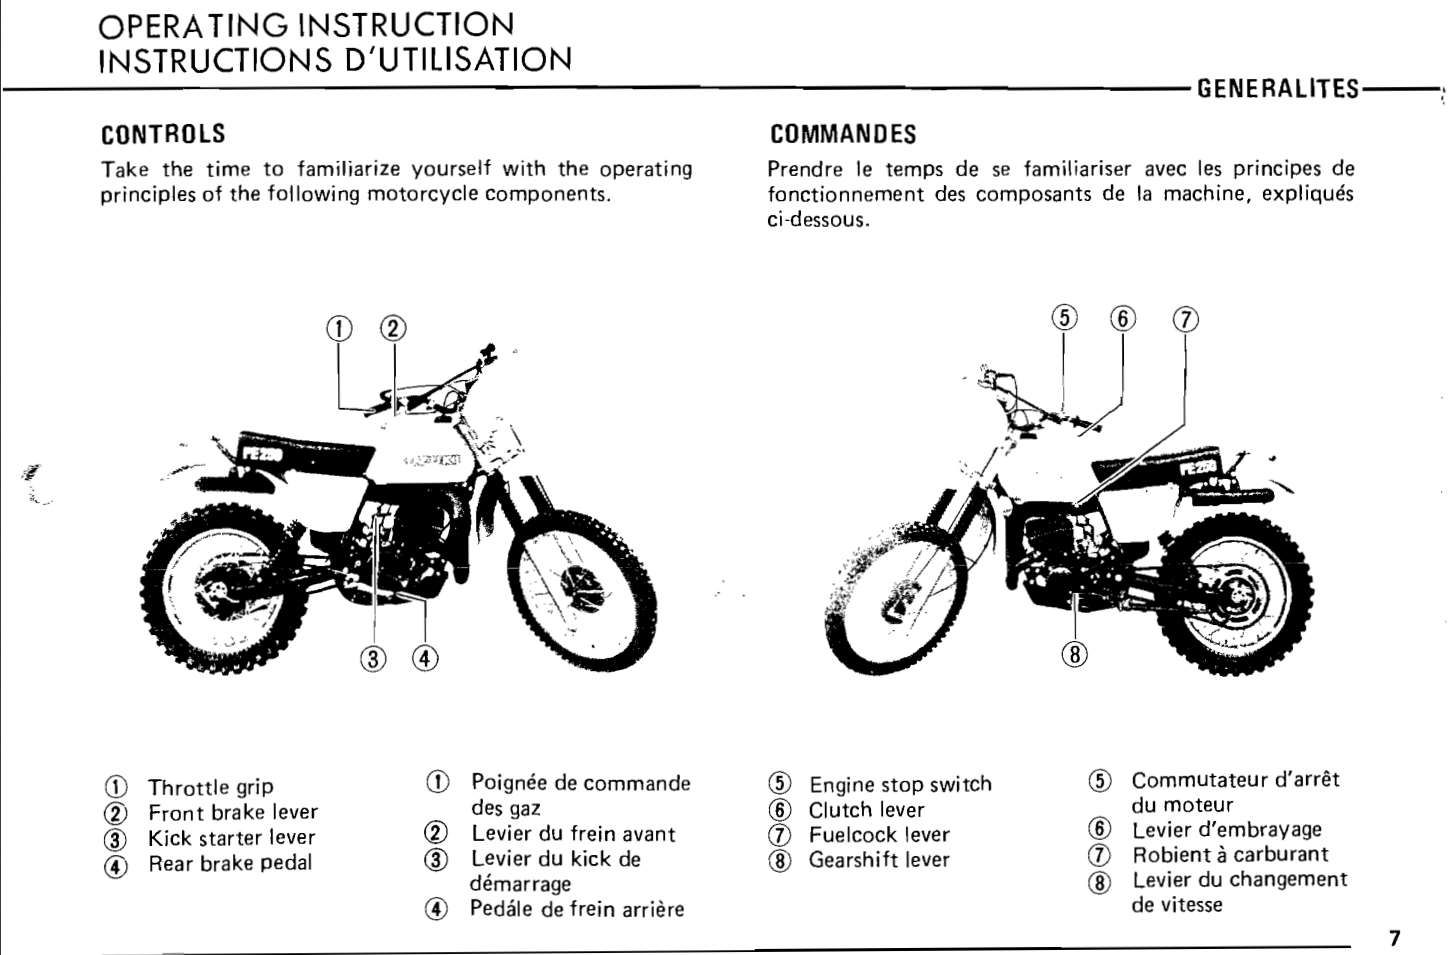 Suzuki Pe250 1978 Owner S Manual Has Been Published On Procarmanuals Com Https Procarmanuals Com Suzuki Pe250 1978 Owners Manual Owners Manuals Manual Suzuki